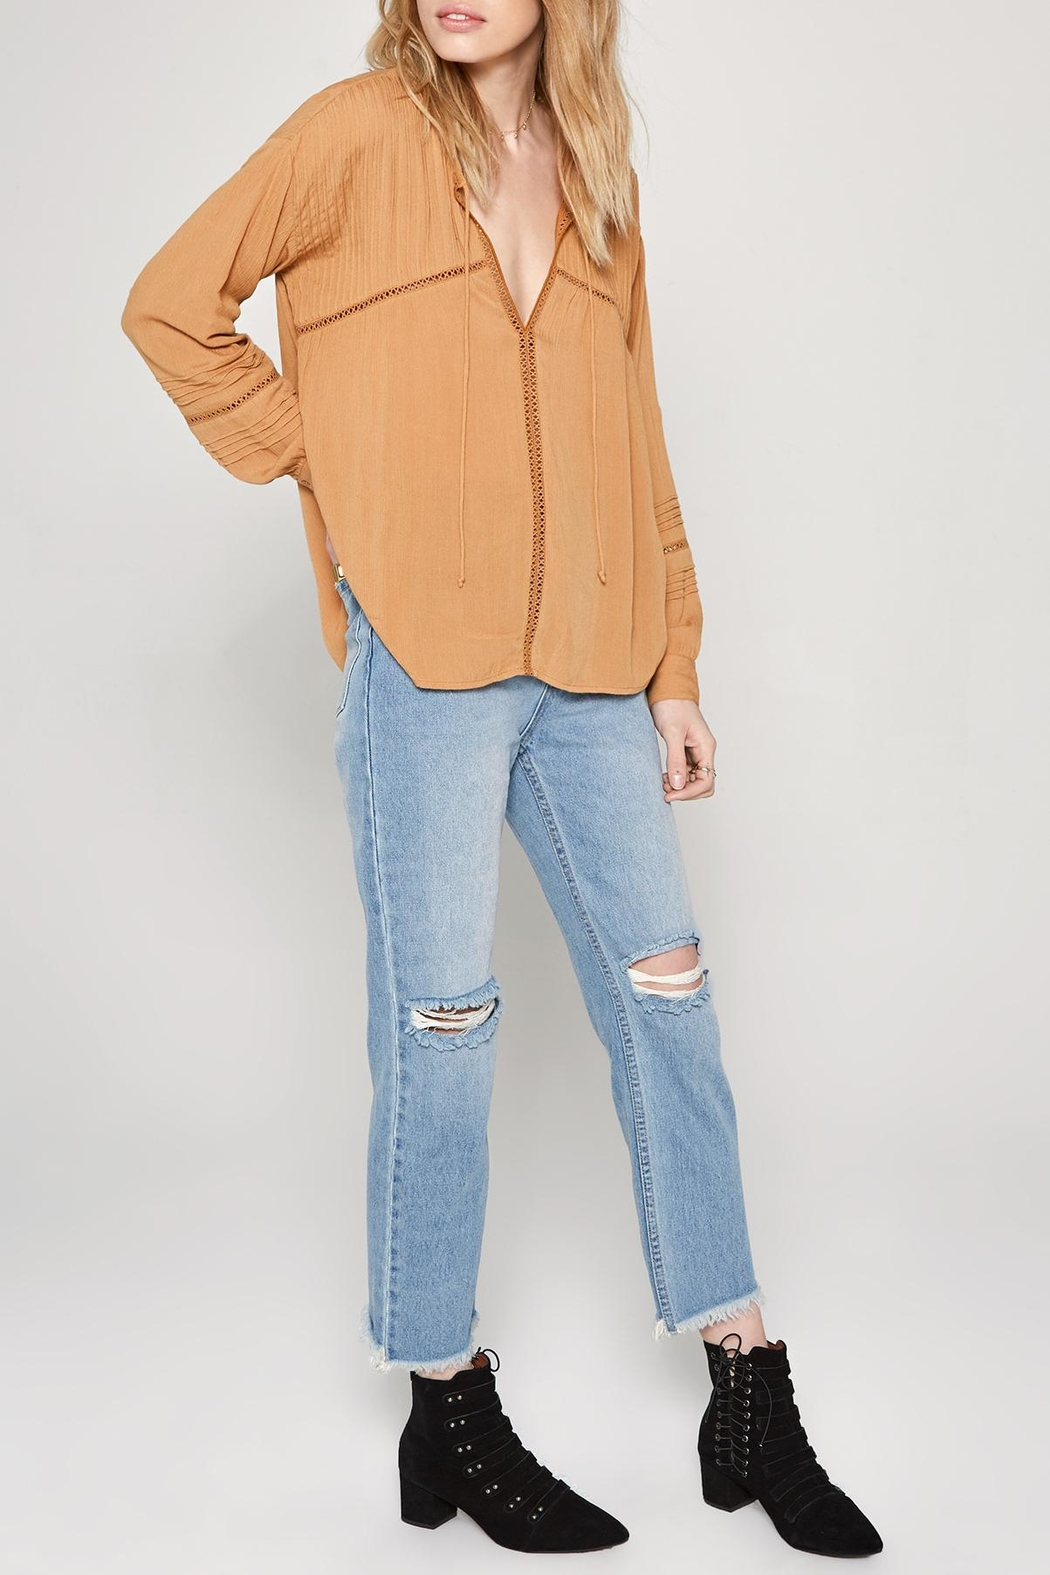 AMUSE SOCIETY Zelia Woven Top - Side Cropped Image